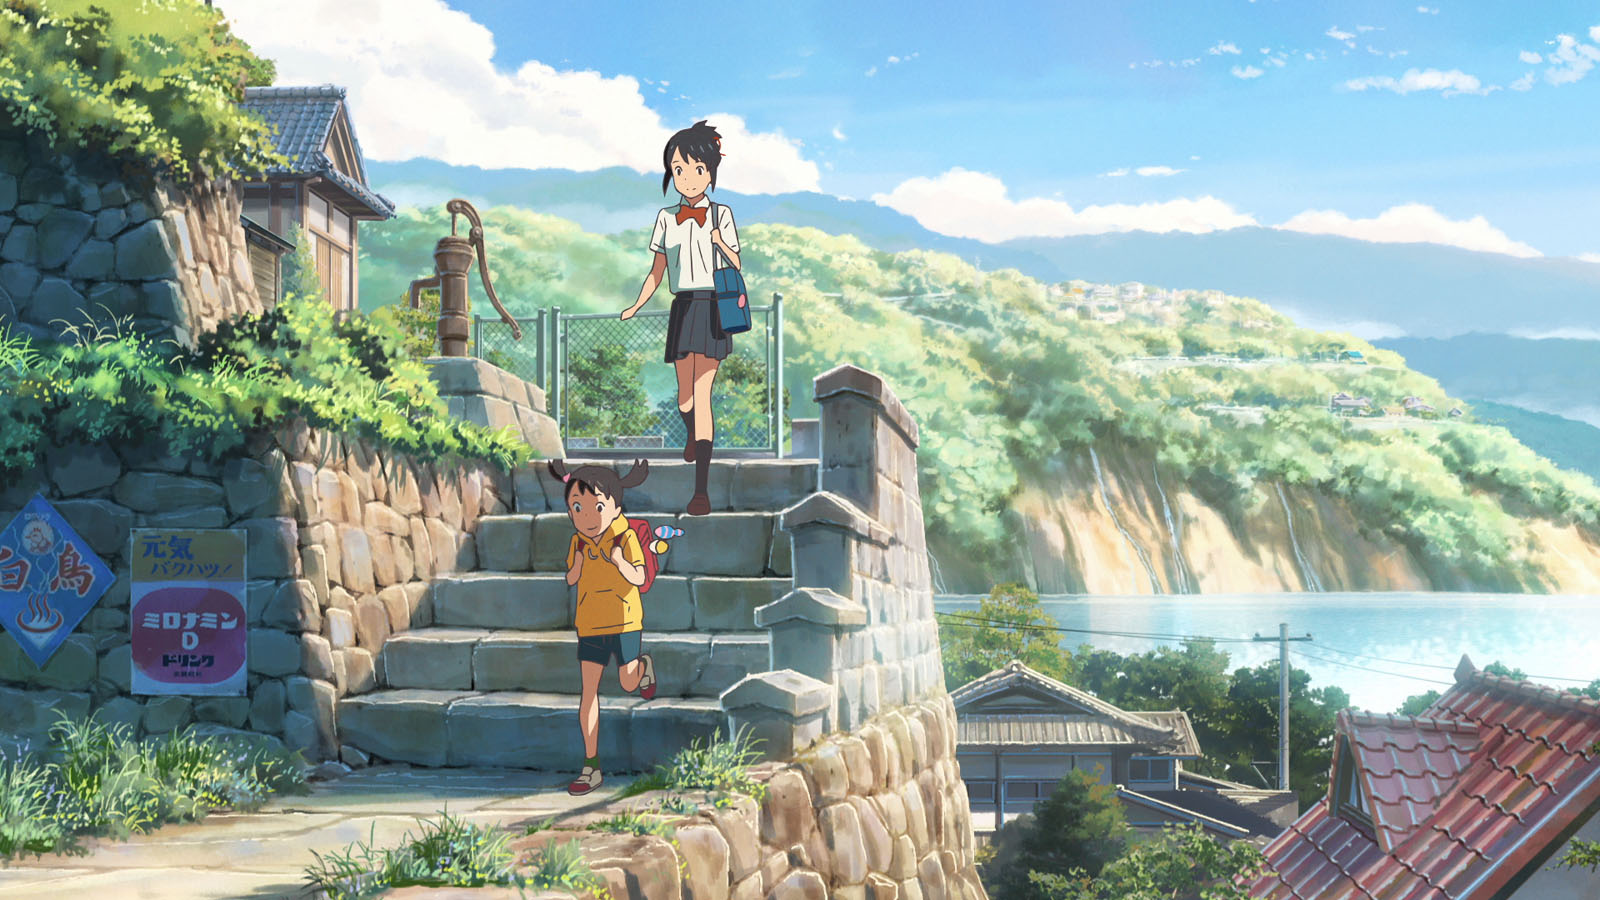 Cinematogrill your name film sortie japon